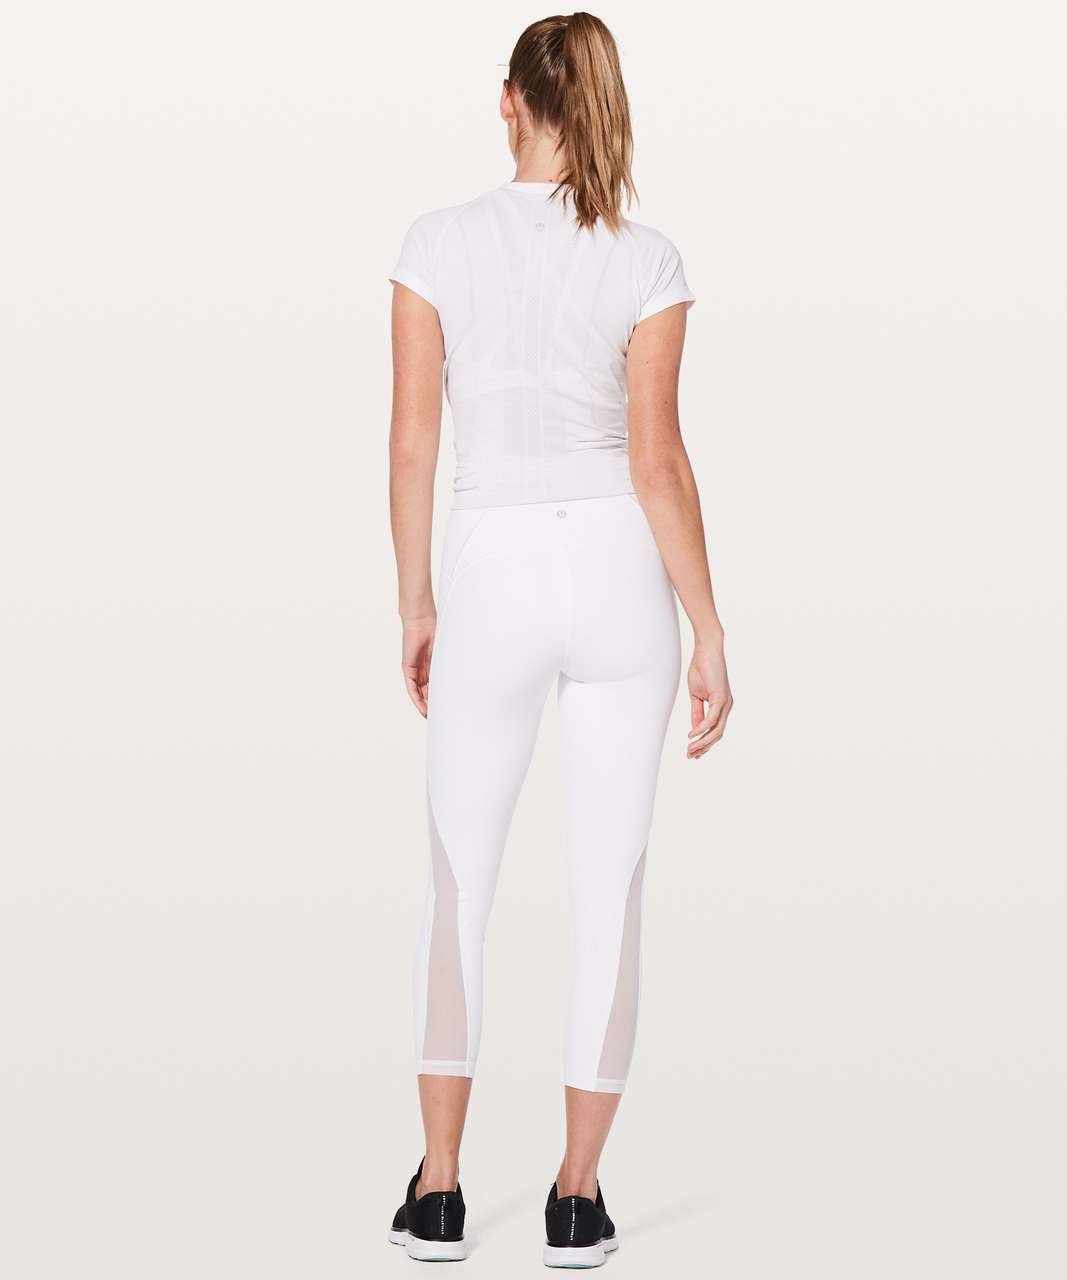 "Lululemon Train Times 7/8 Pant *25"" - White (First Release)"